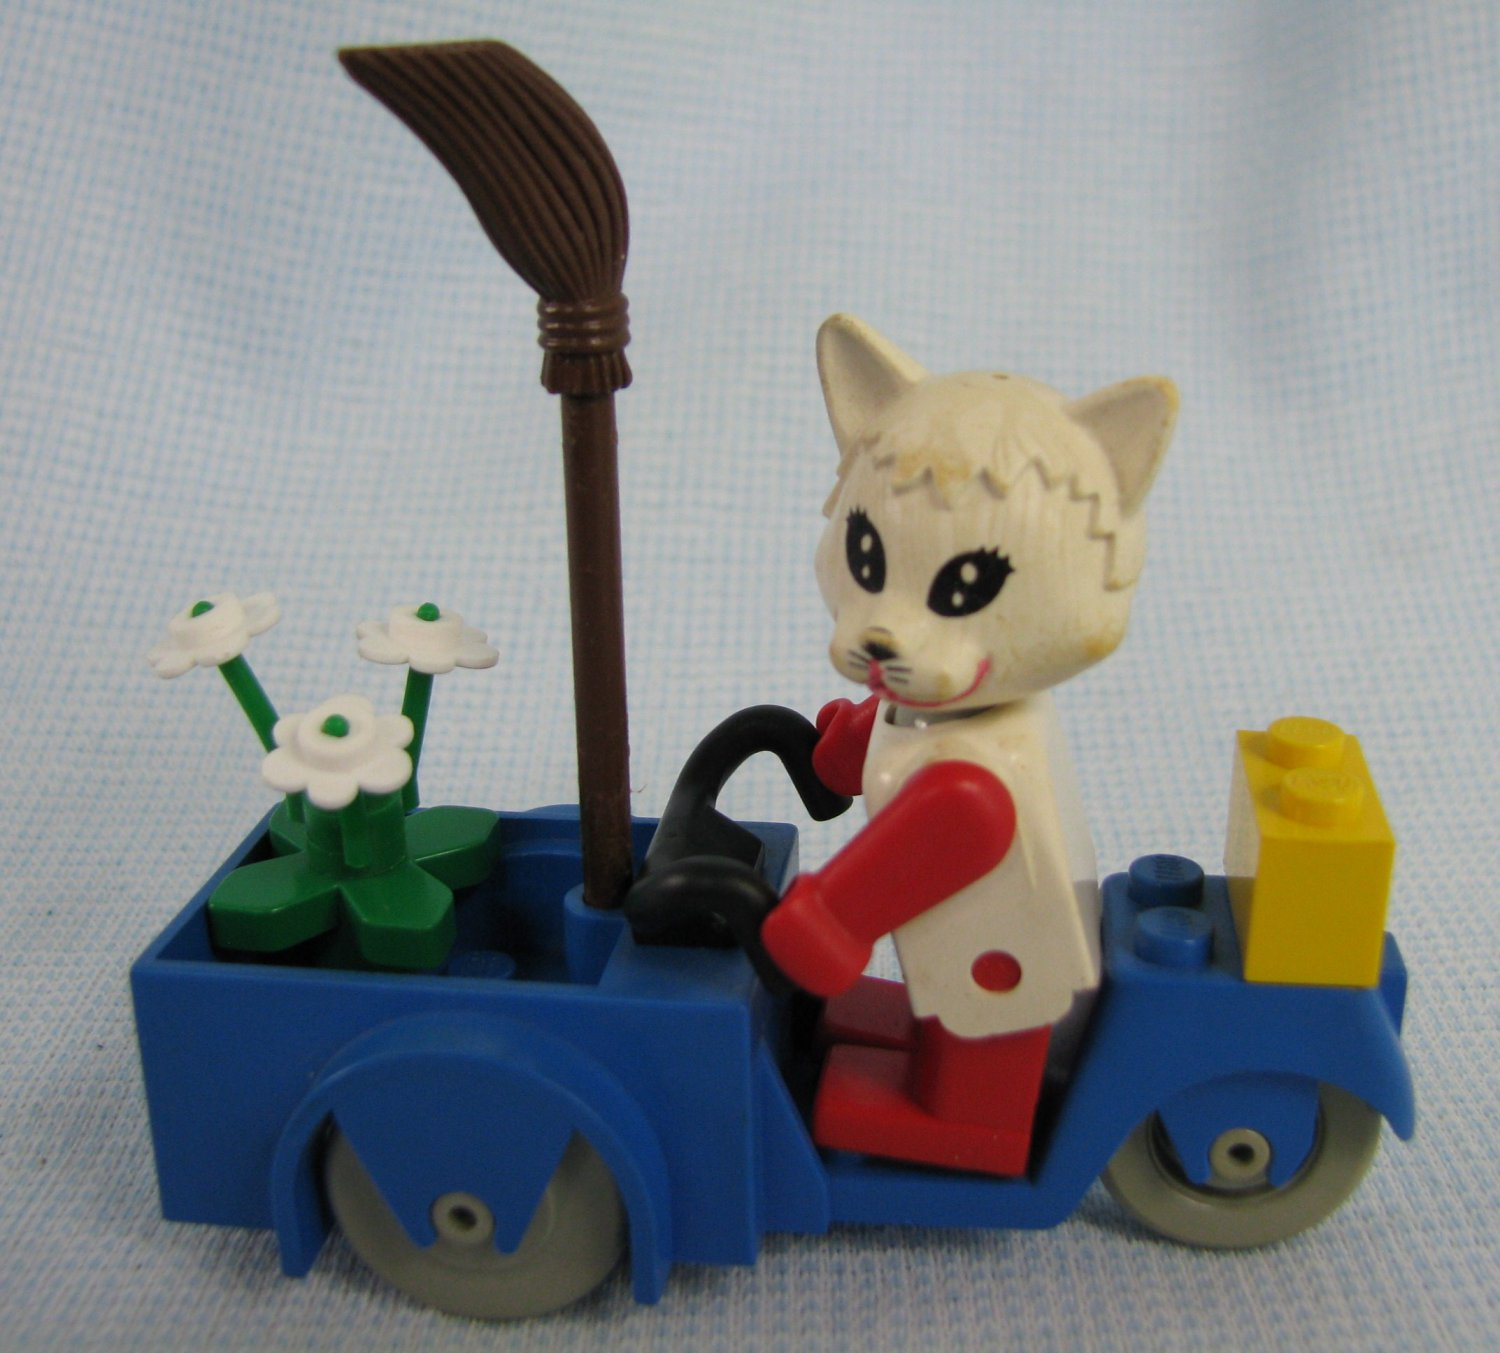 Vintage Lego Fabuland Cat on a Scooter